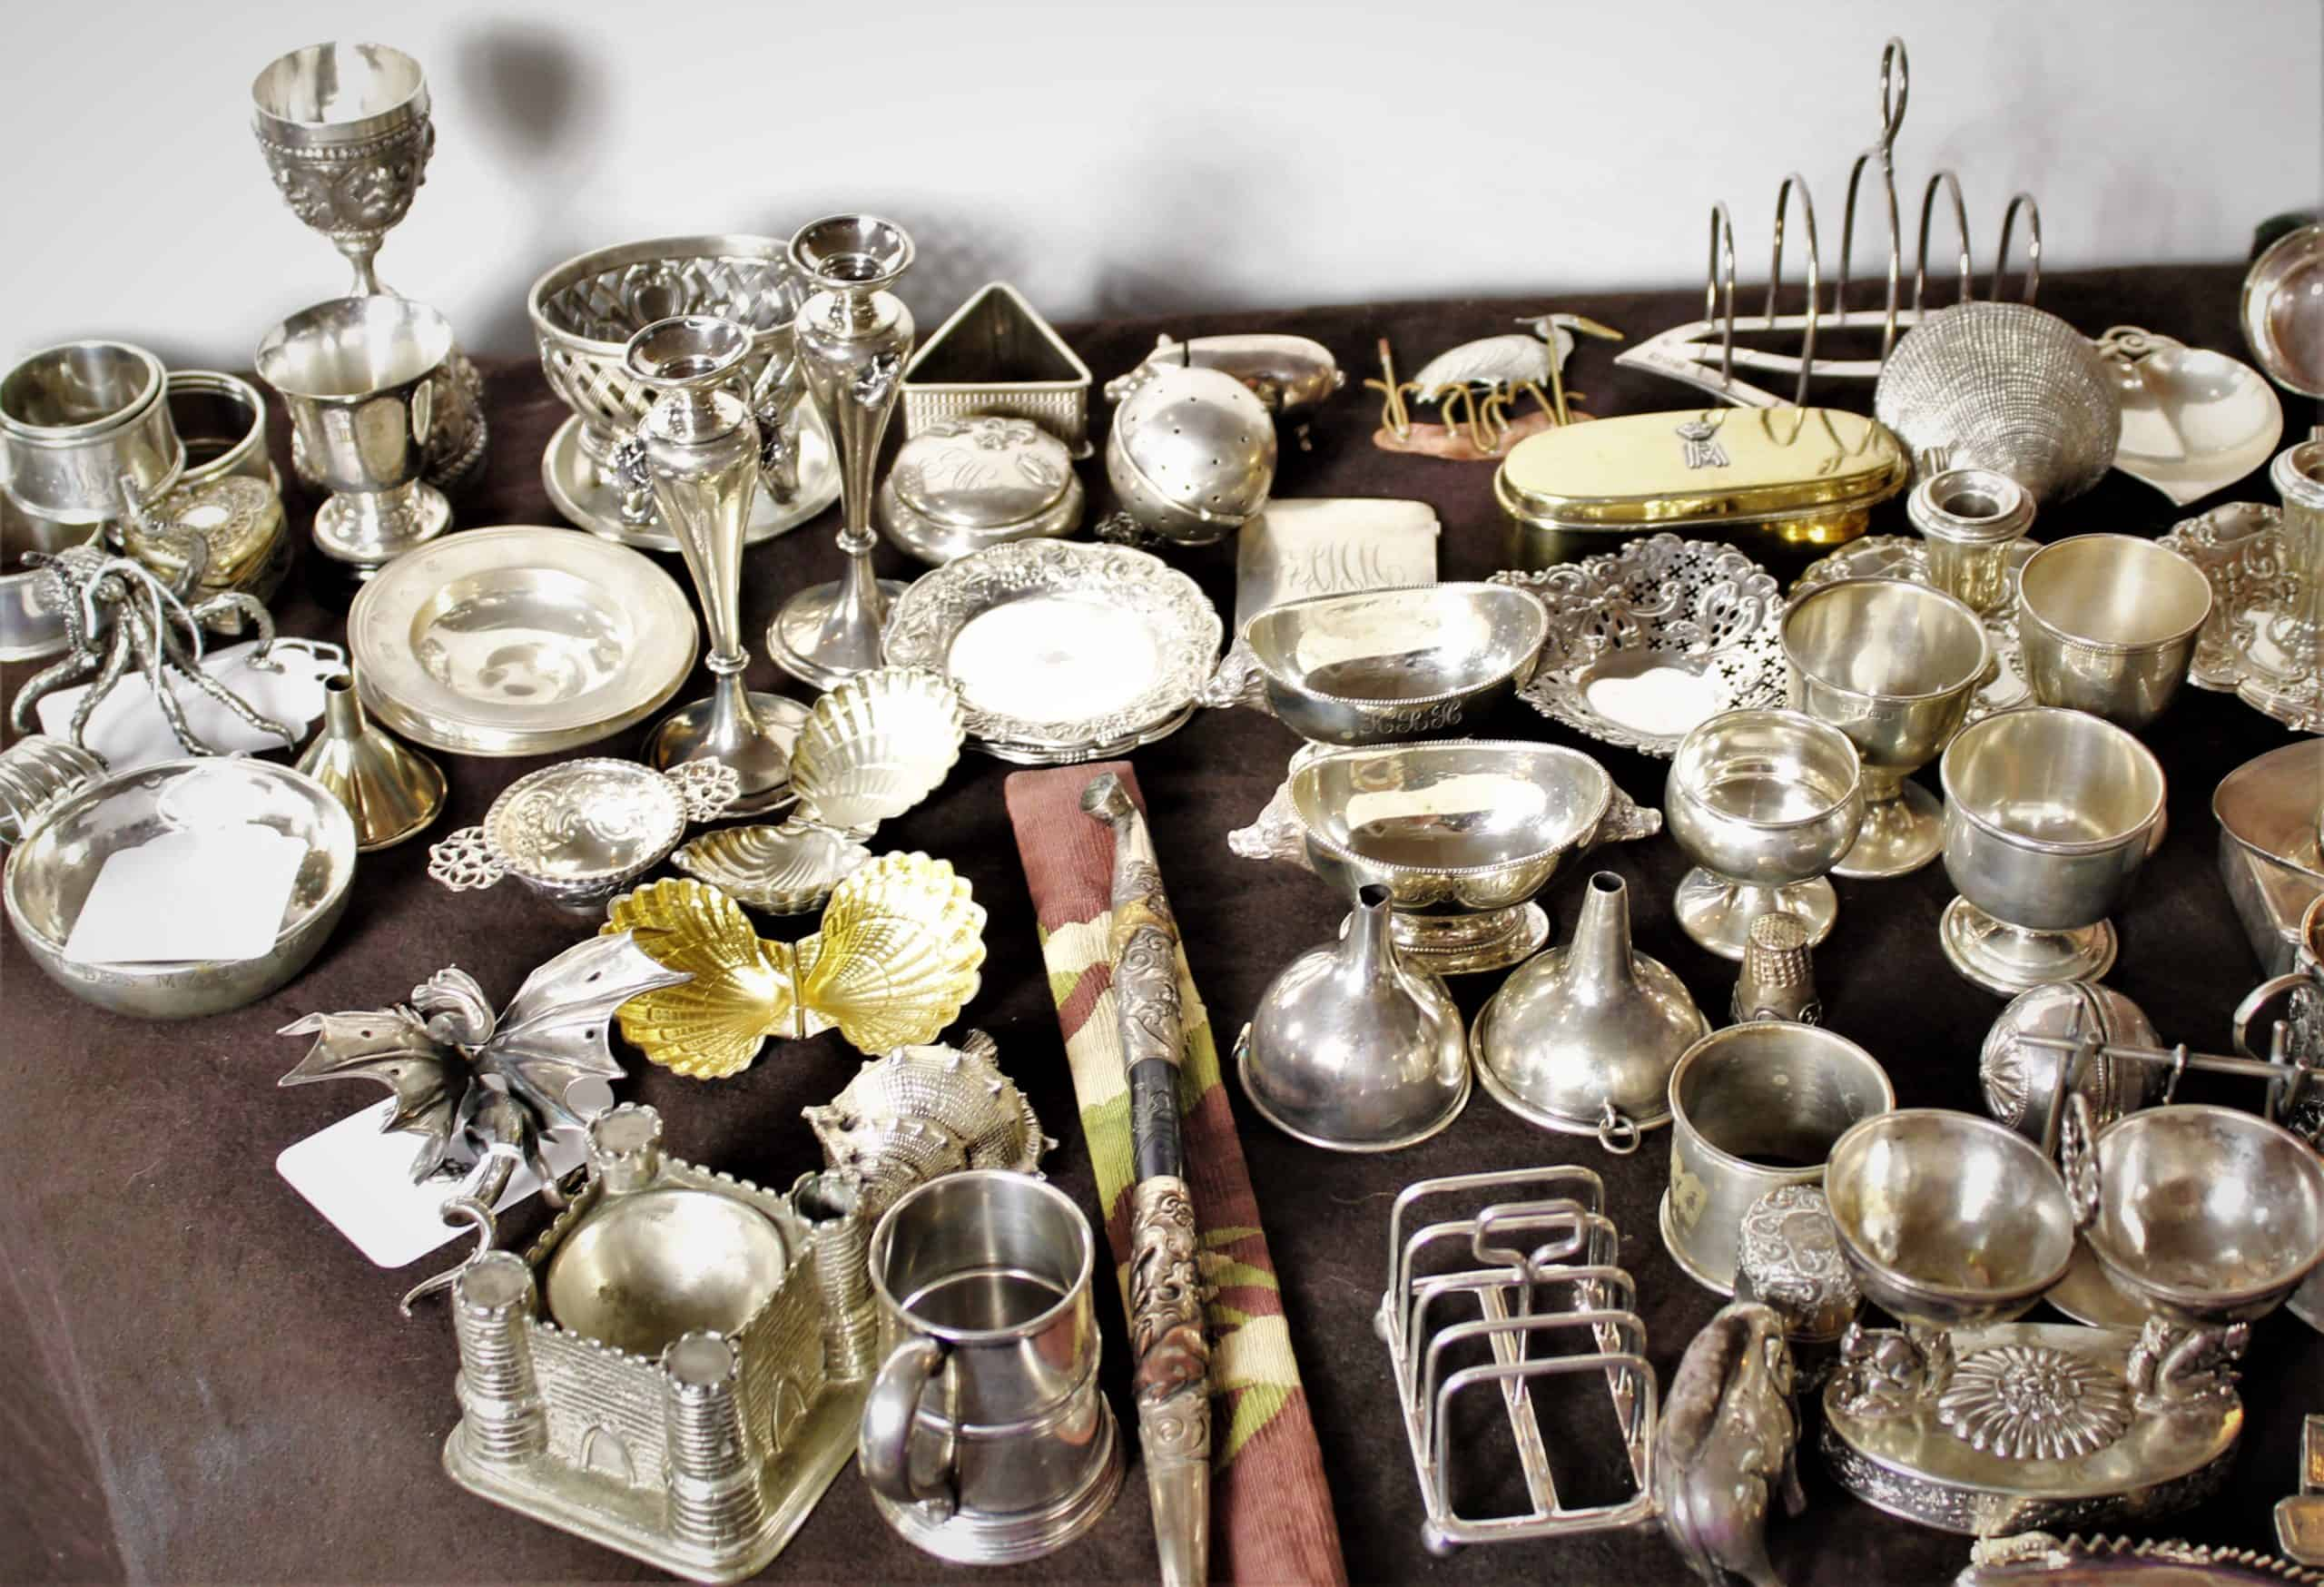 A 70 Year Collection of 19th and 20th C. Sterling Silver Miniatures